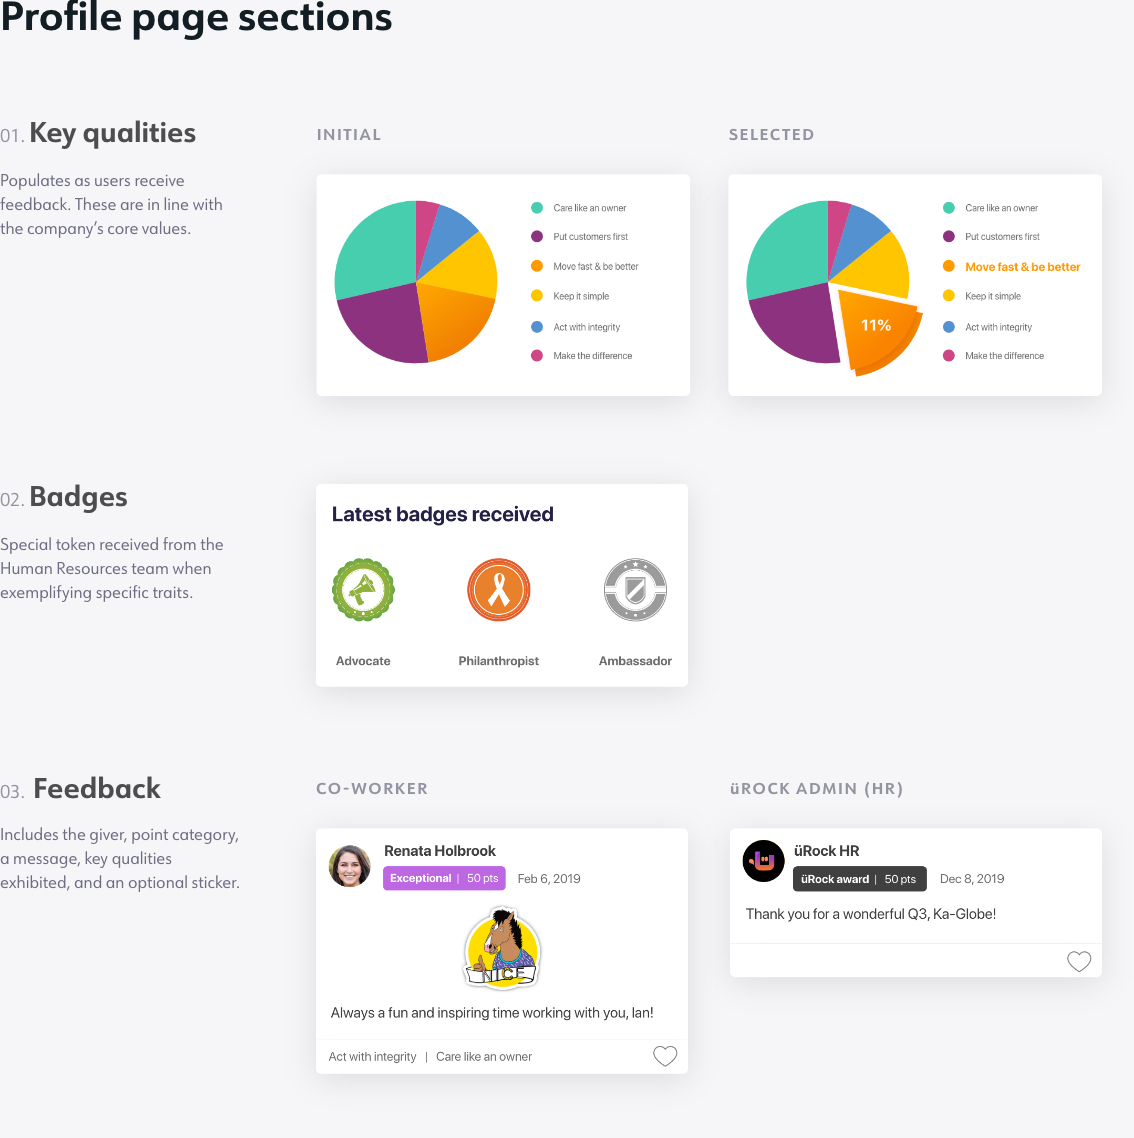 urock_profile-page-sections@2x